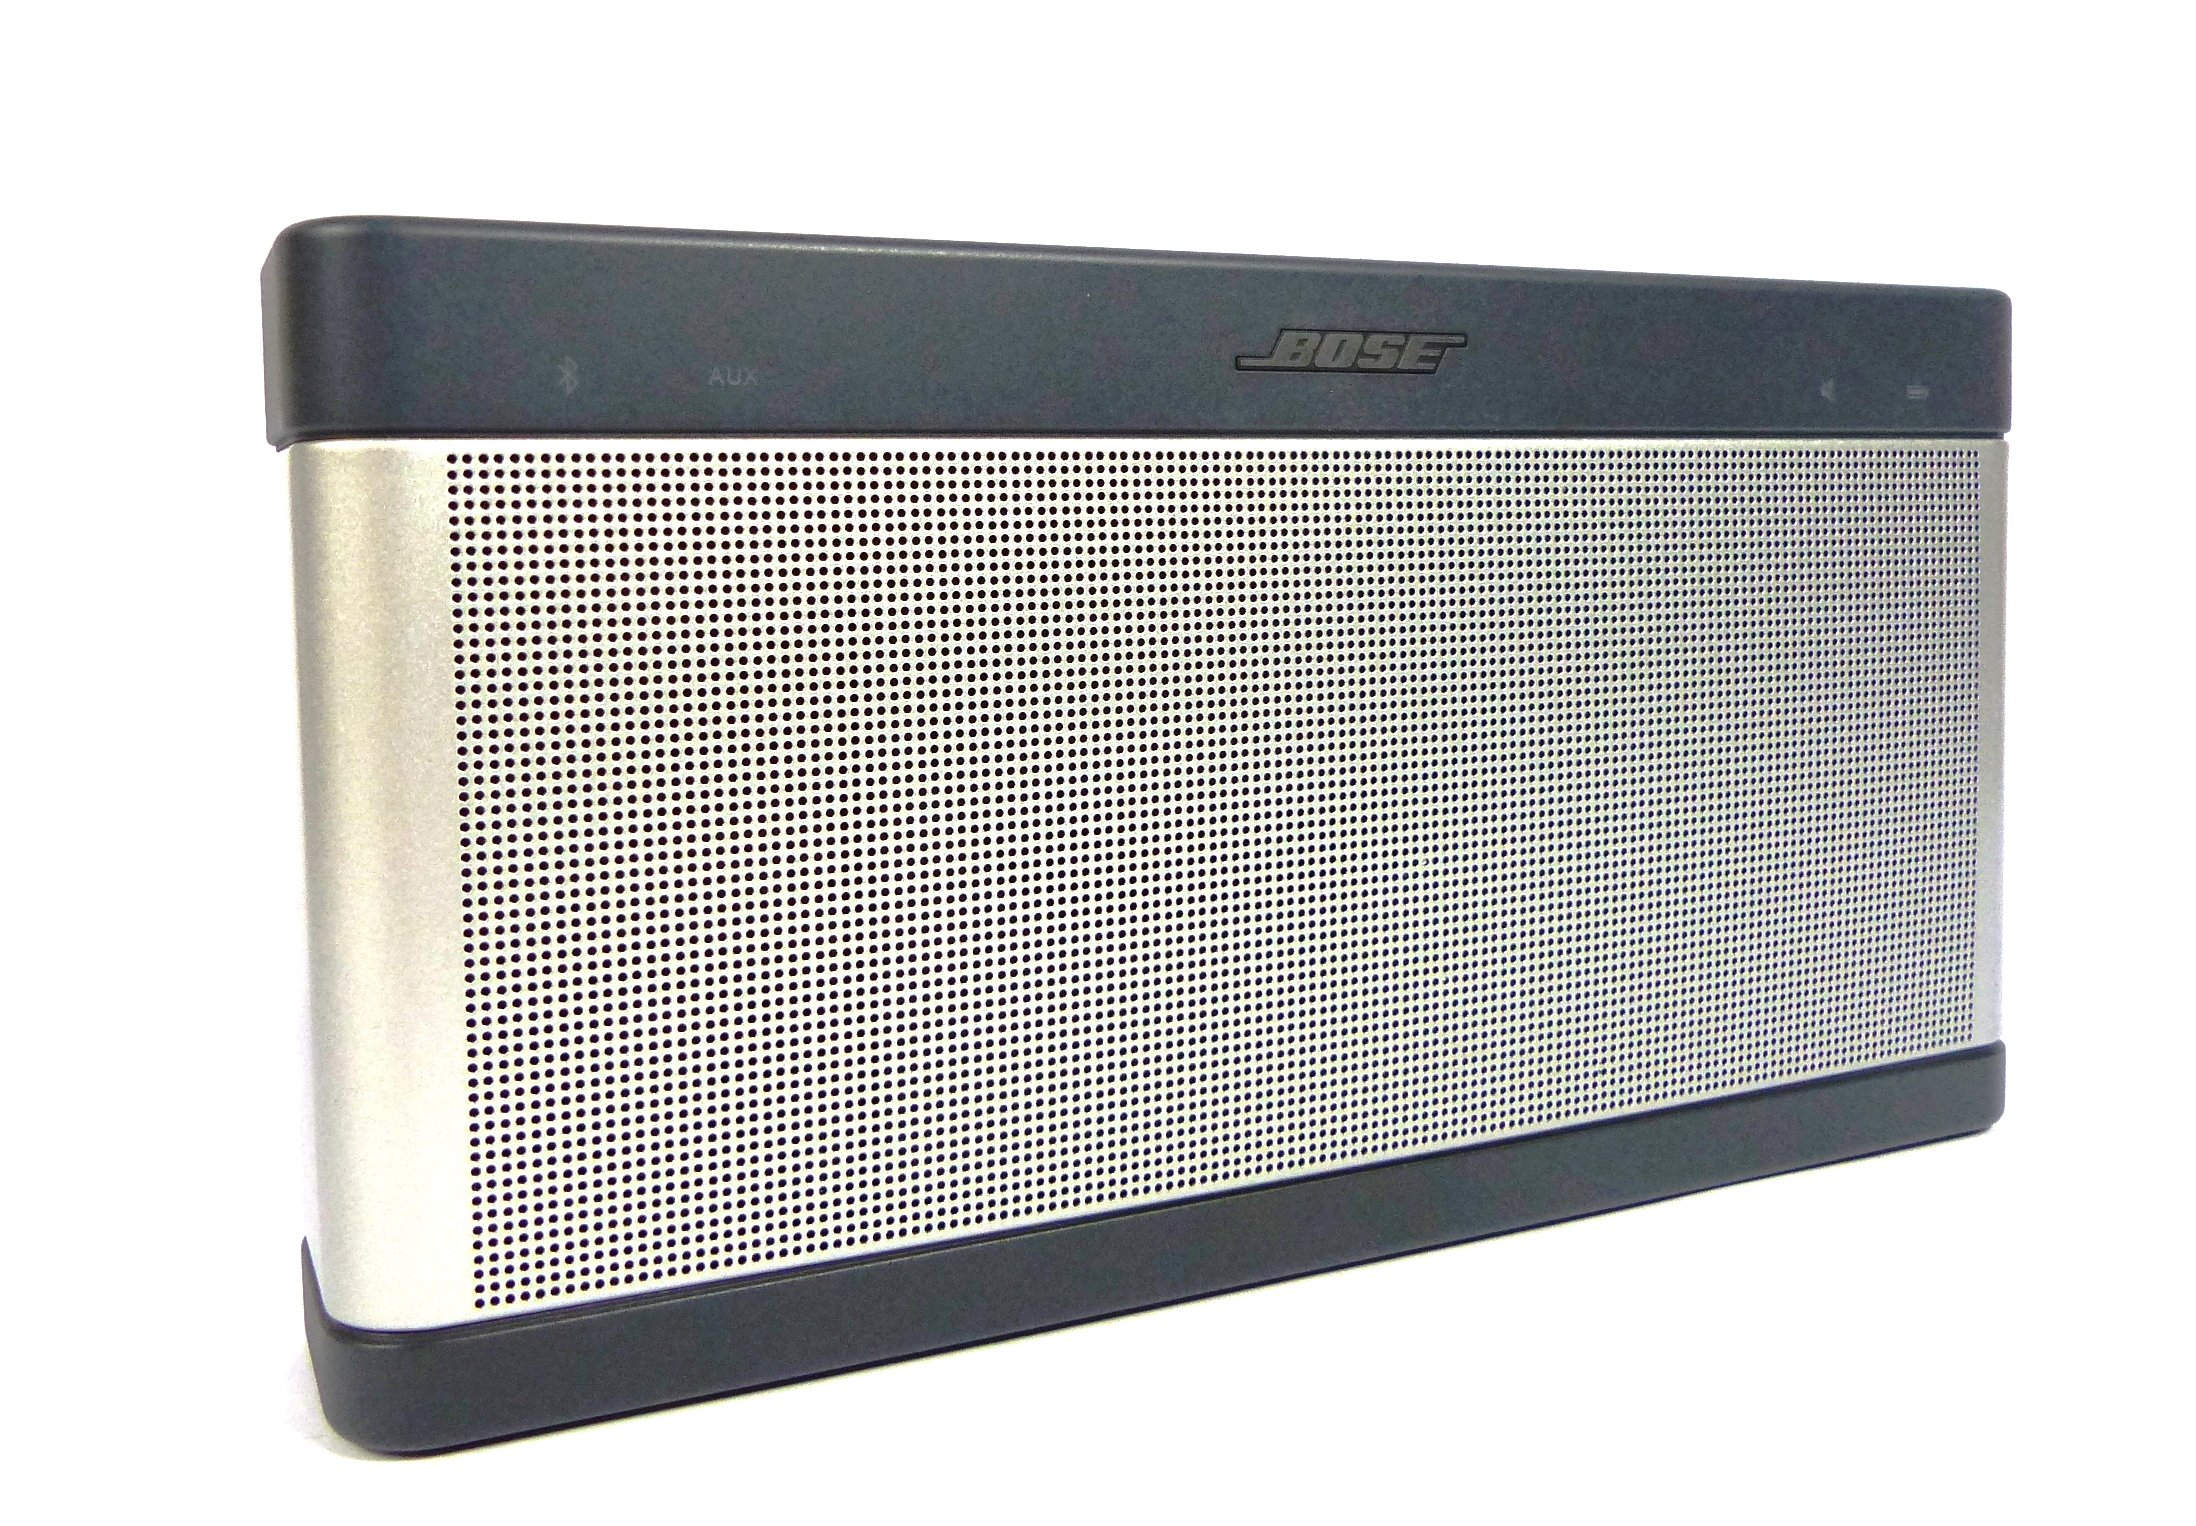 bose bluetooth lautsprecher soundlink iii mobile speaker tragbar box musik ebay. Black Bedroom Furniture Sets. Home Design Ideas